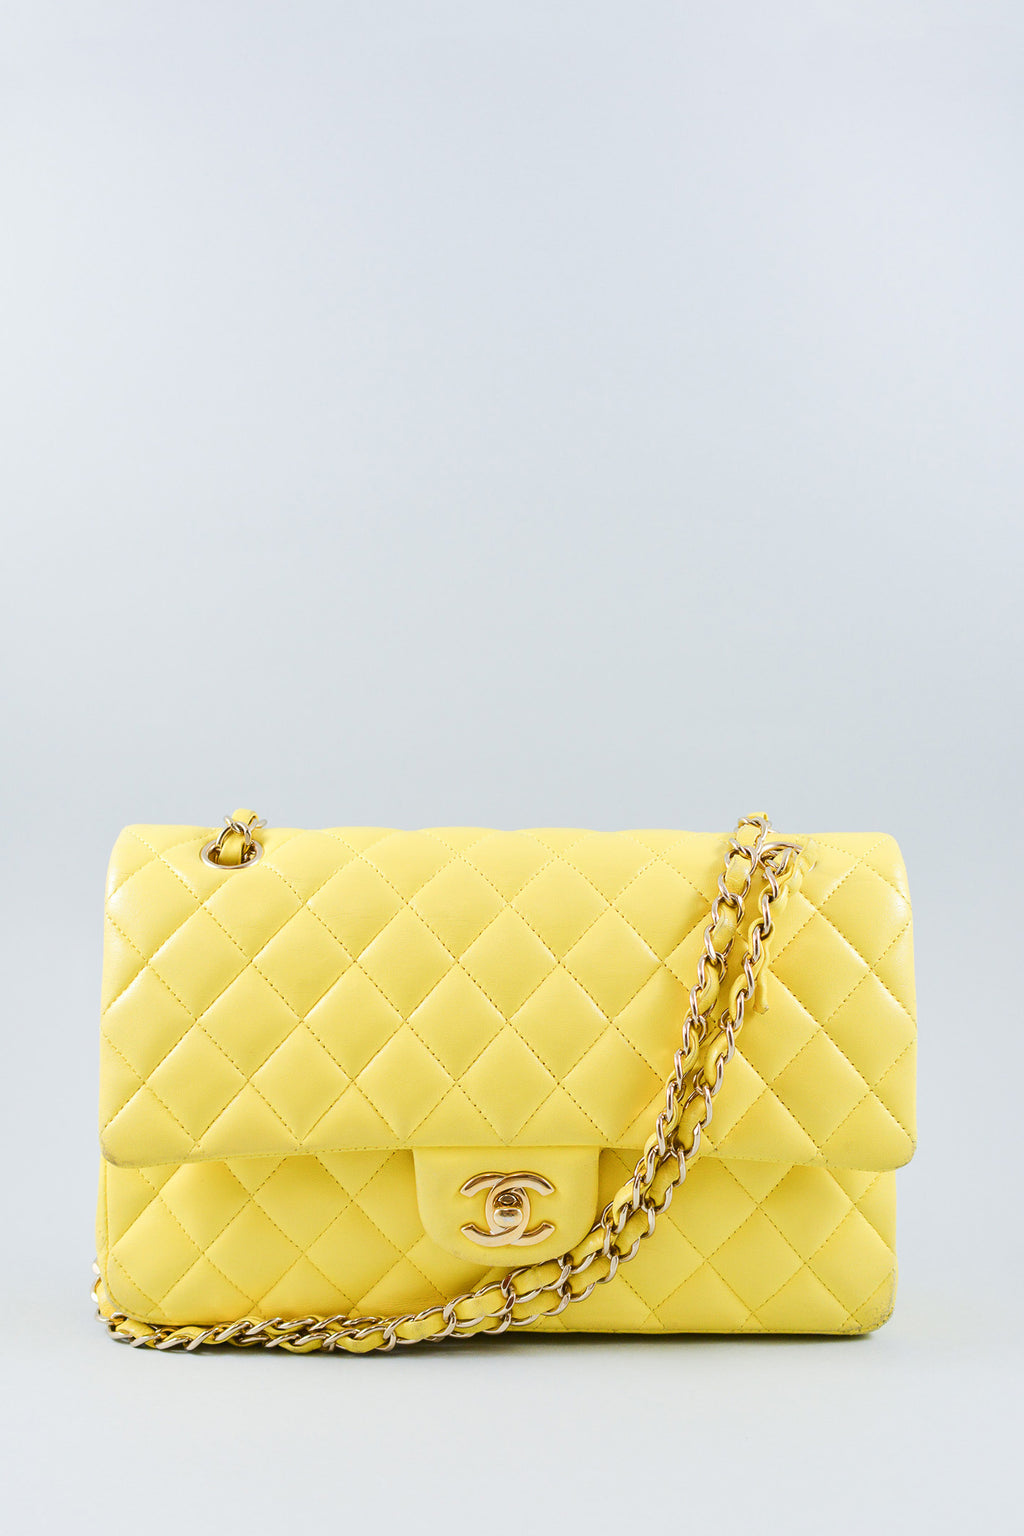 Chanel Yellow Lambskin Classic Double Flap